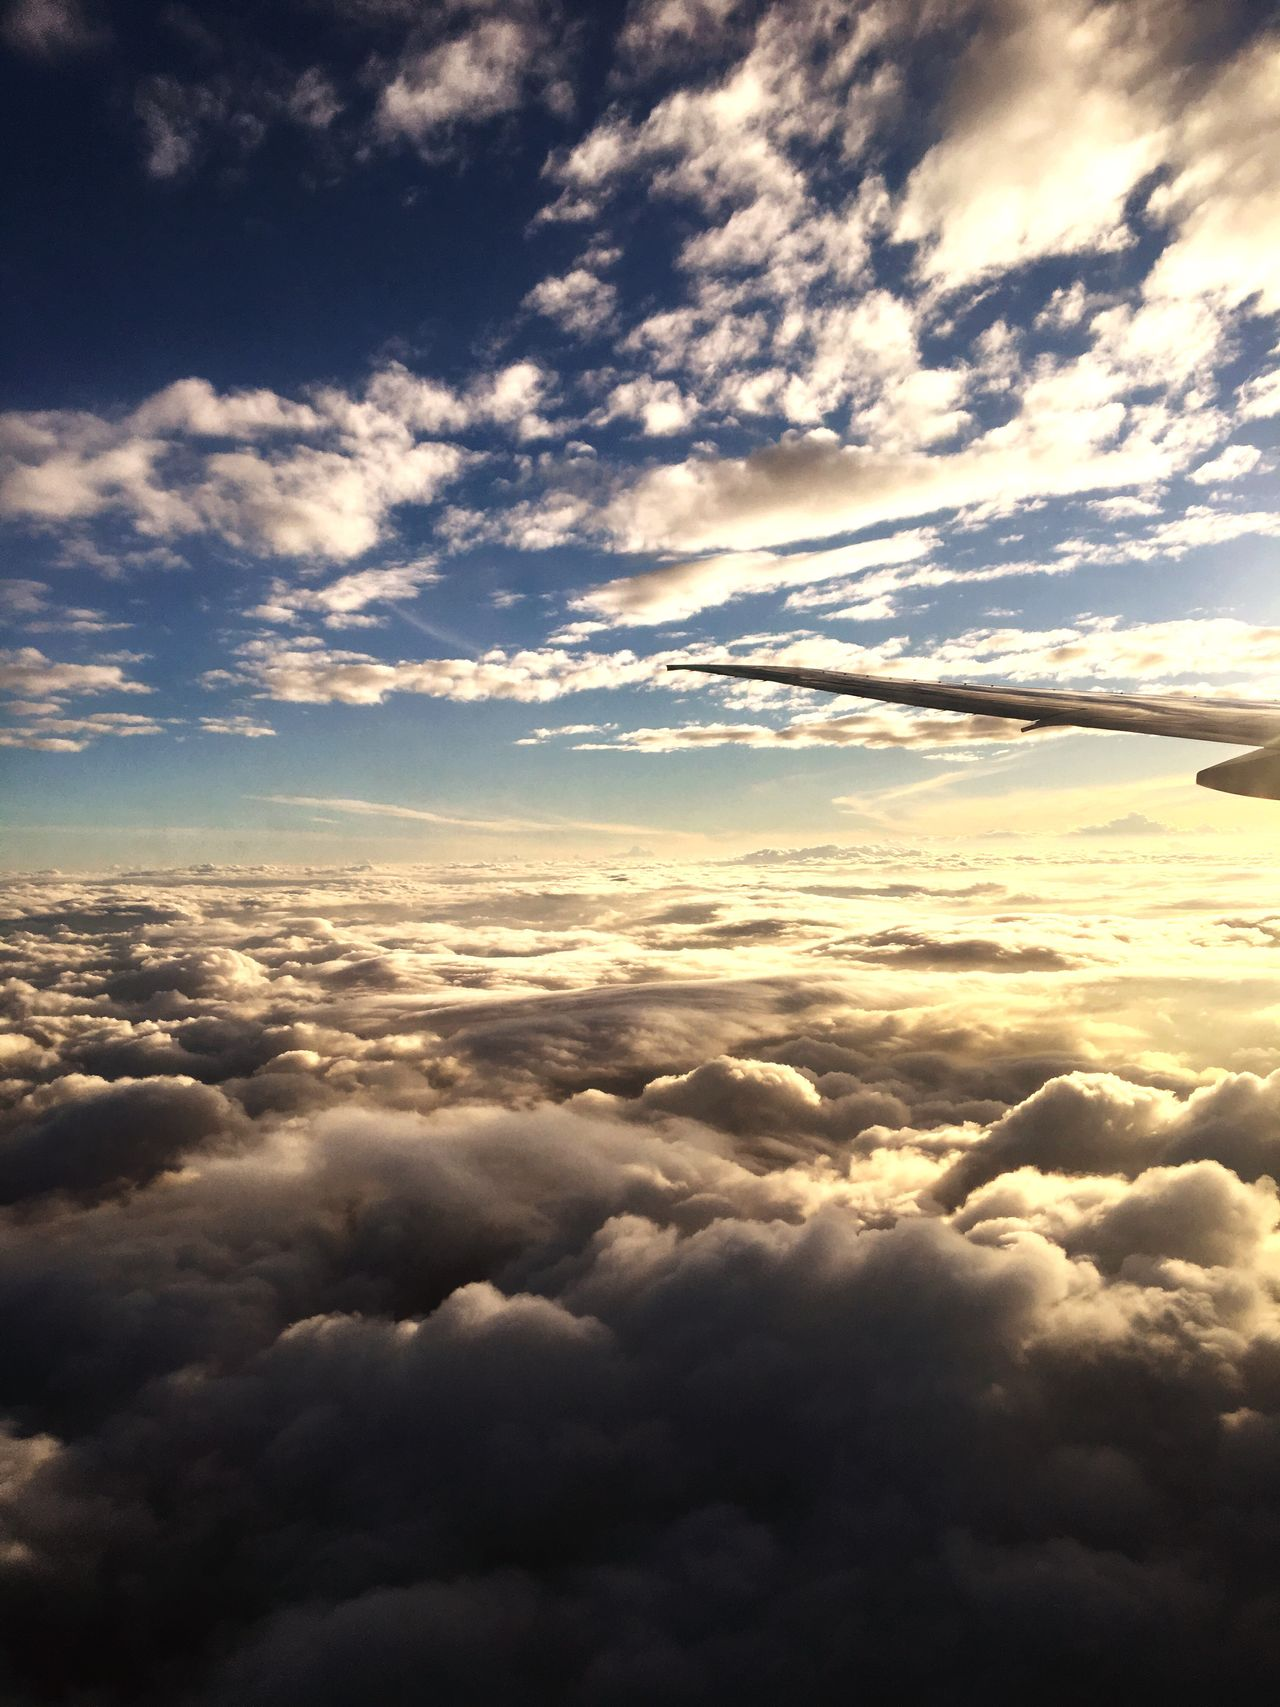 From KL to AUE sky Cloud - Sky Beauty In Naturescape]lTravelpe Travel airplane Backgrounds